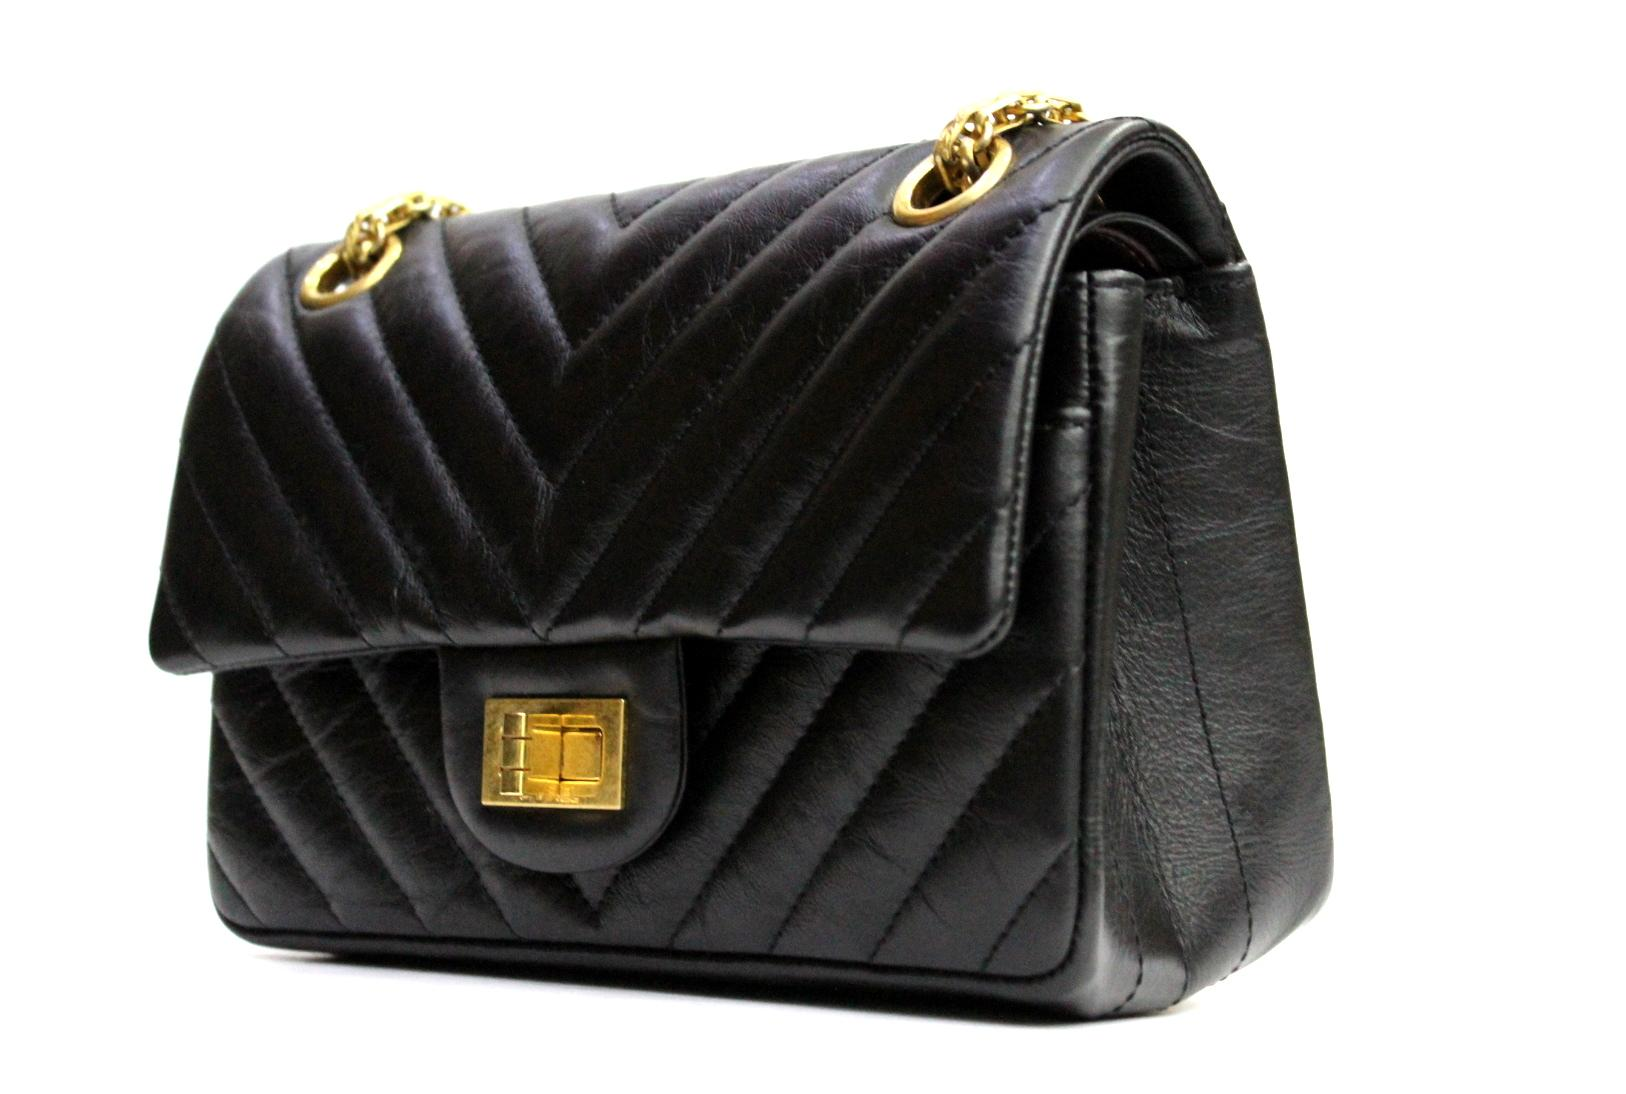 af670a4c2ee9b0 Chanel Black Leather Classic 2.55 Small Size Bag at 1stdibs